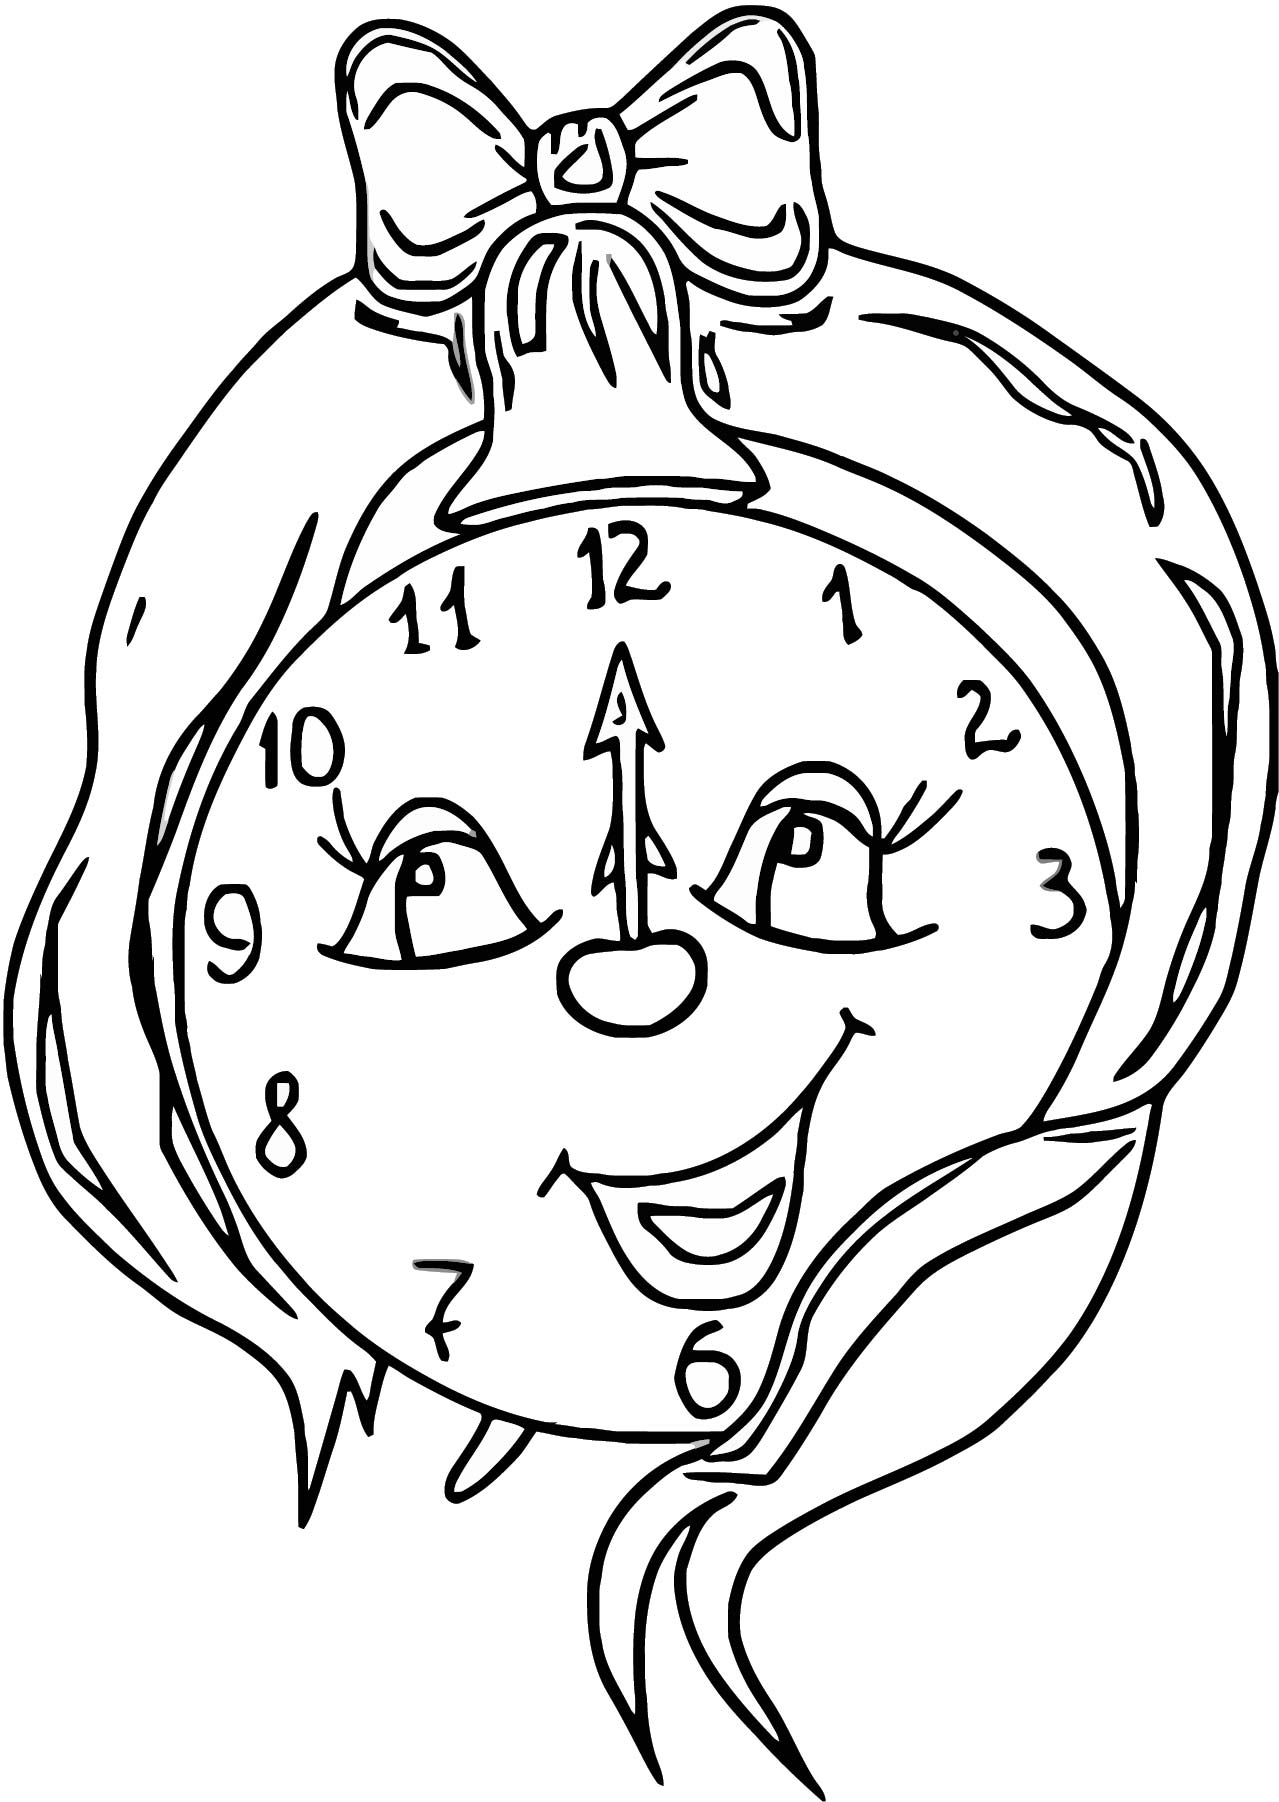 Funny Clock Free Clipa Free Printable Rt Cartoonized Free Printable Coloring Page